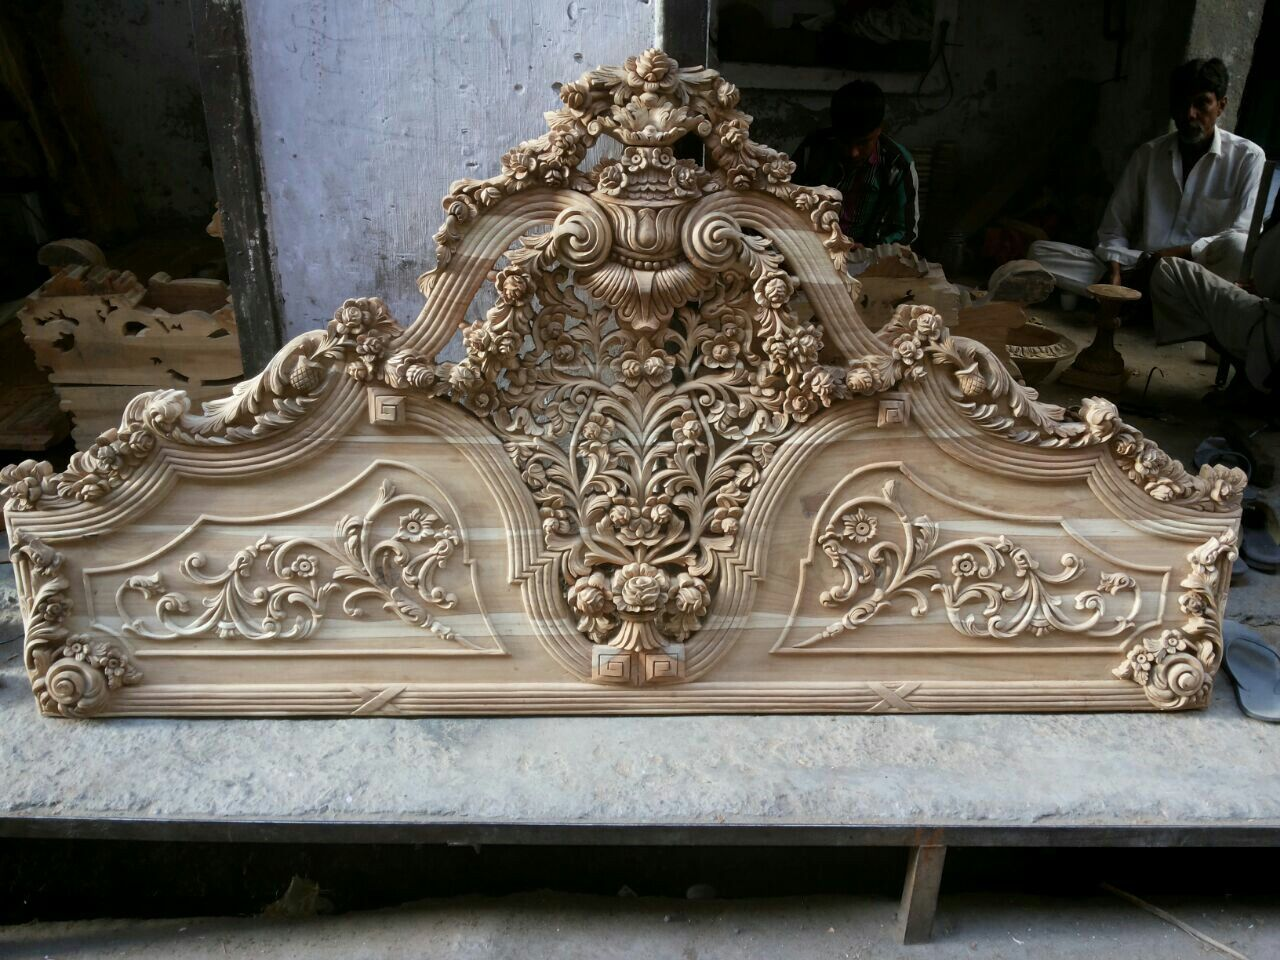 Pin by mohd alam on fr | Wood carving furniture, Wood ...